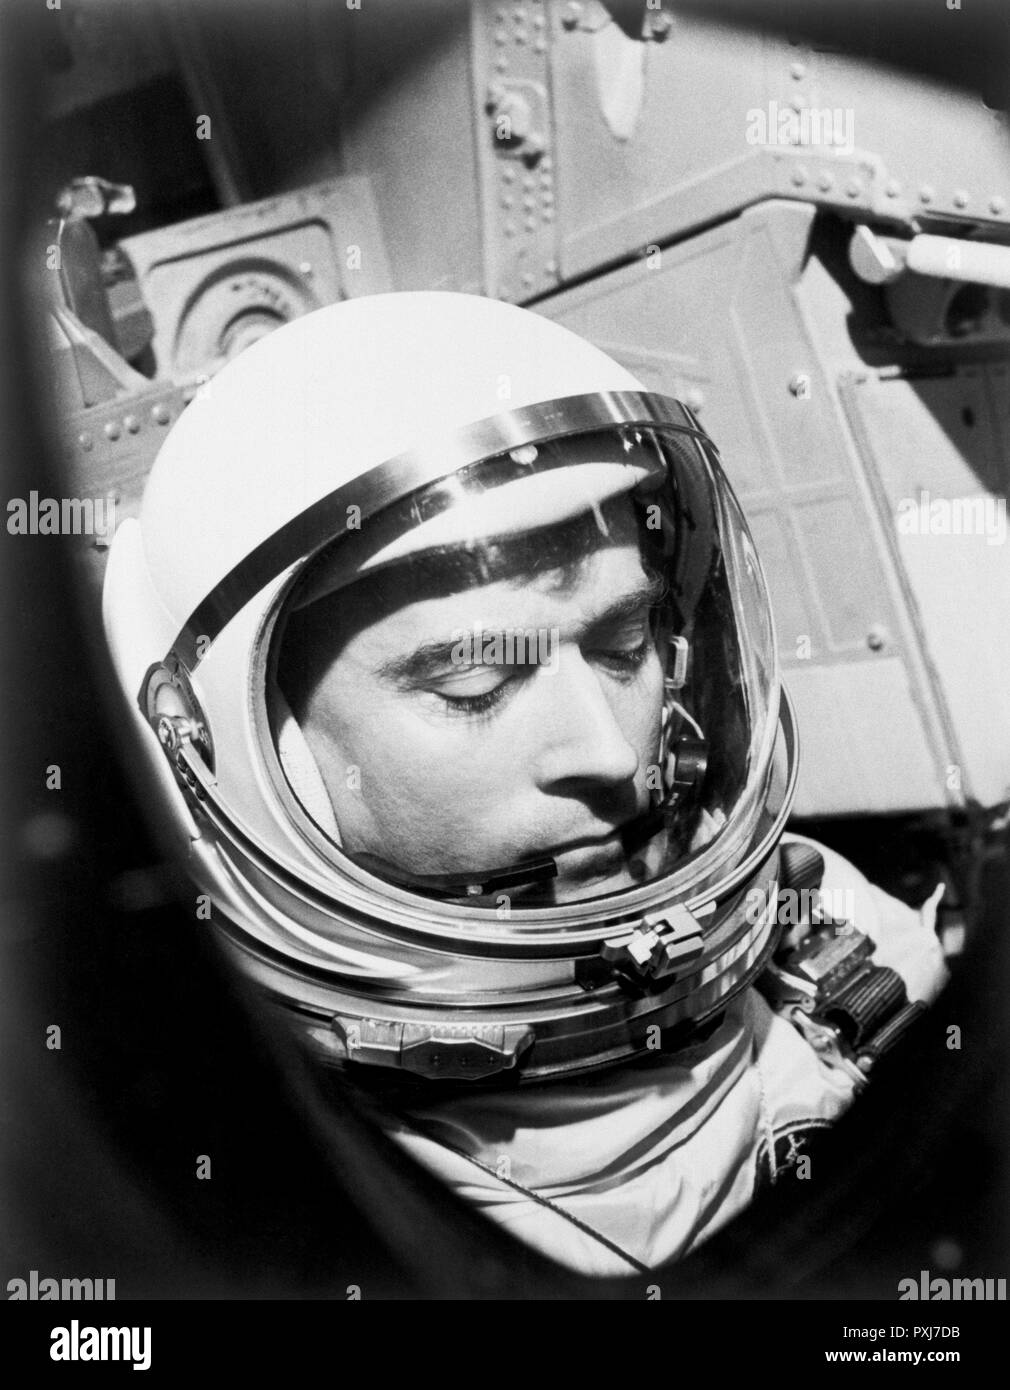 John W. Young (1930-2018), NASA's longest-serving astronaut and the only astronaut to fly missions in the Gemini, Apollo and Space Shuttle Programs. - Stock Image